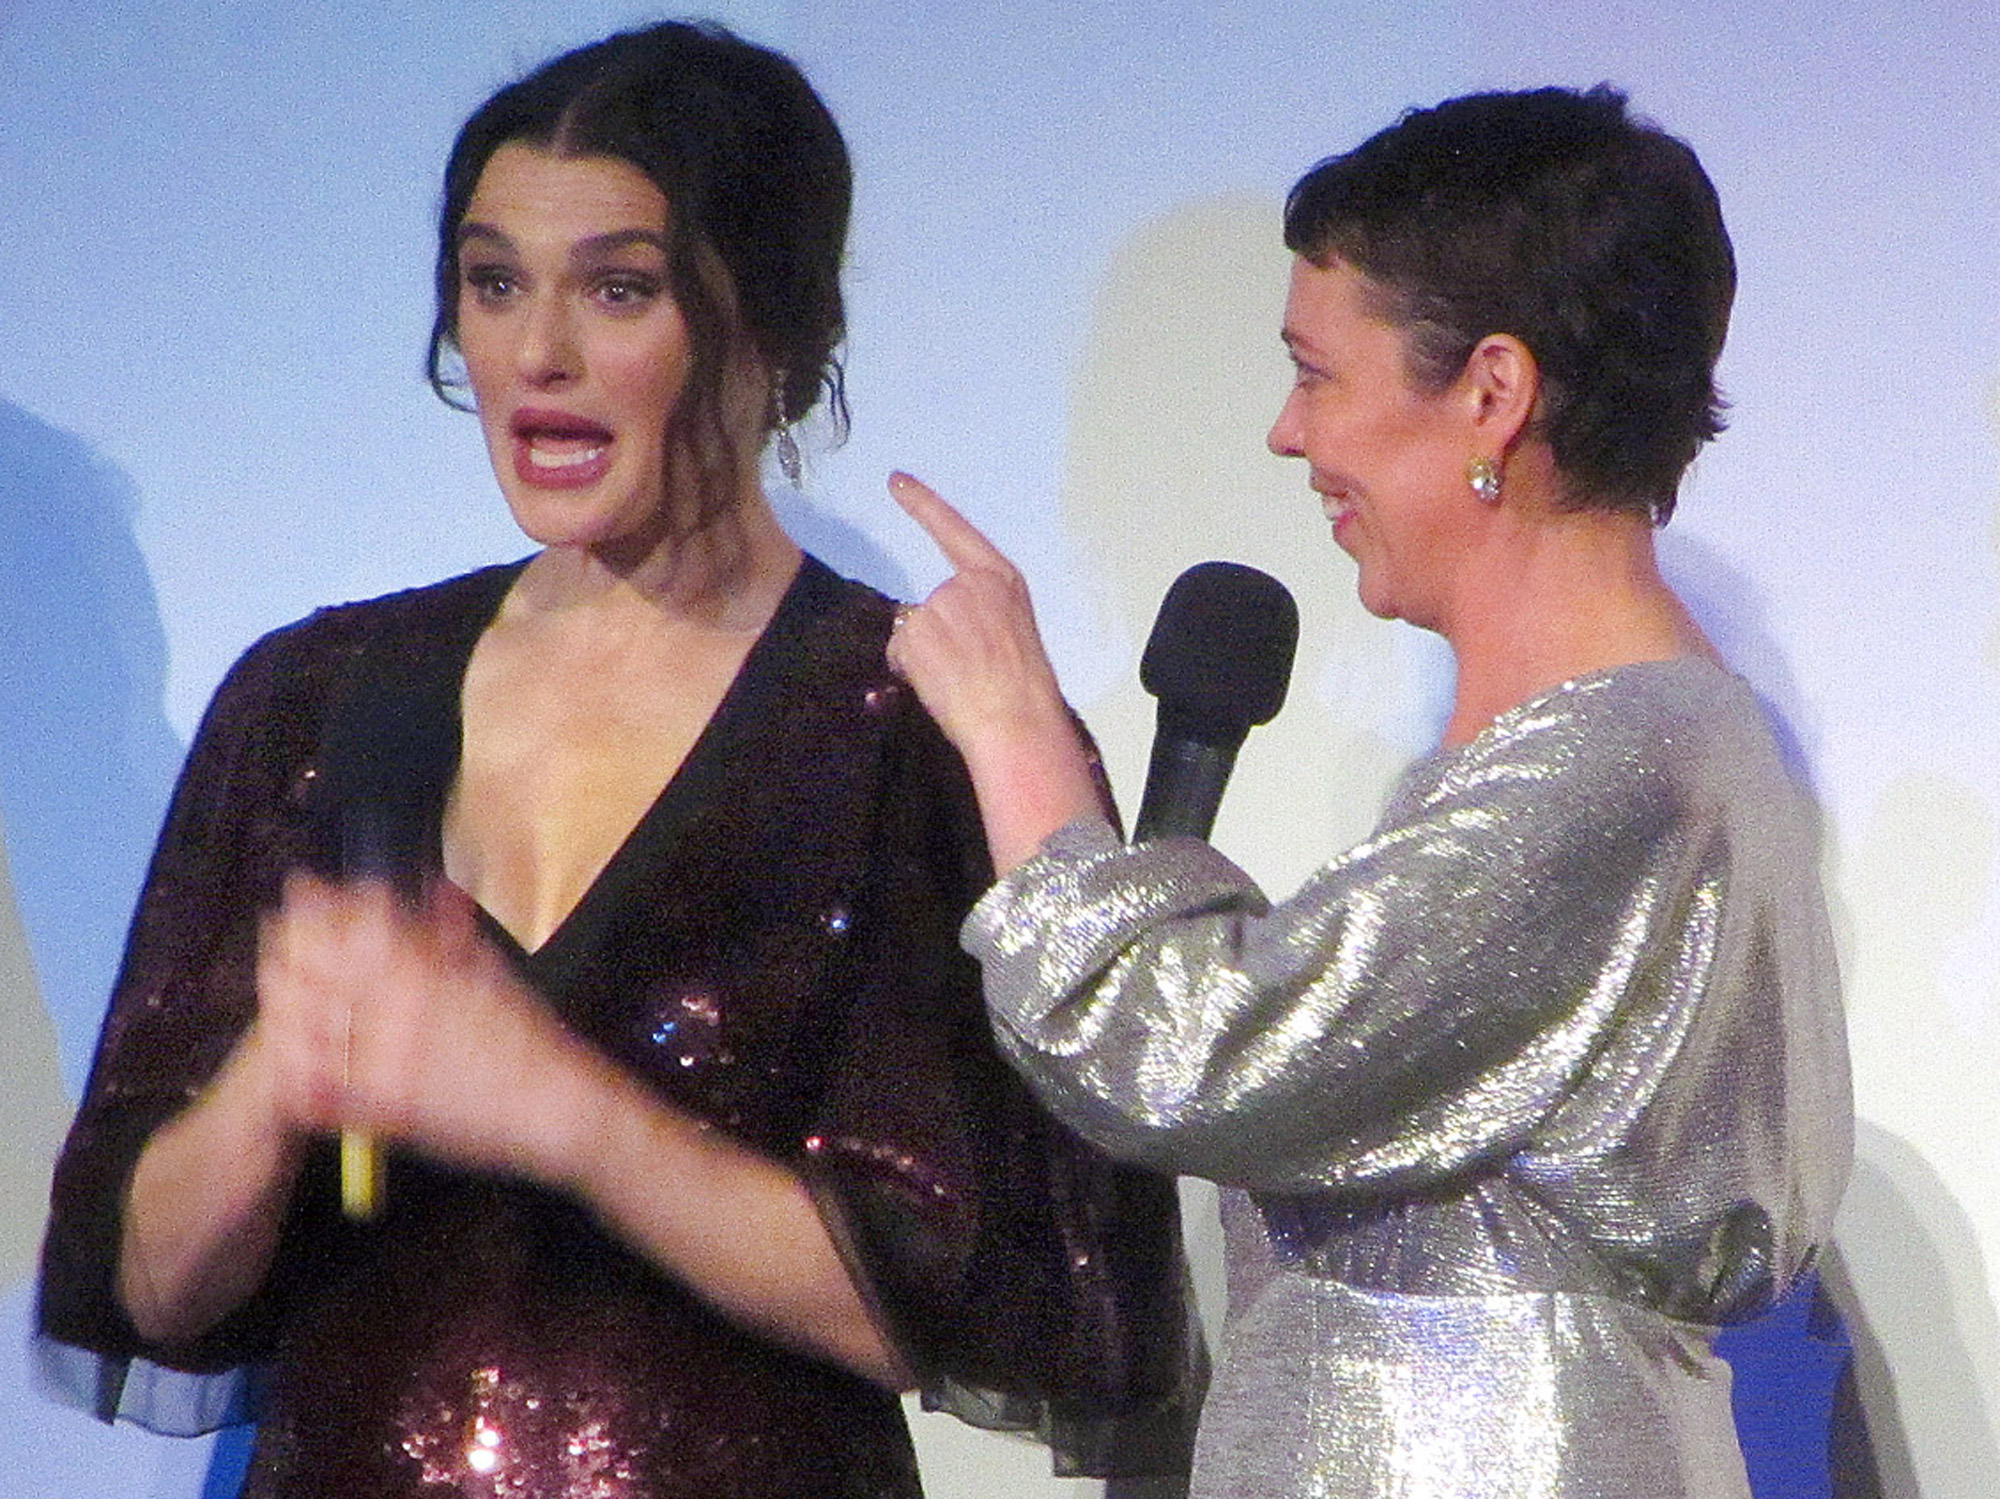 Two woman hold microphones. On the right, the woman in a silver dress points at the woman beside her in a dark red sparkly dress.